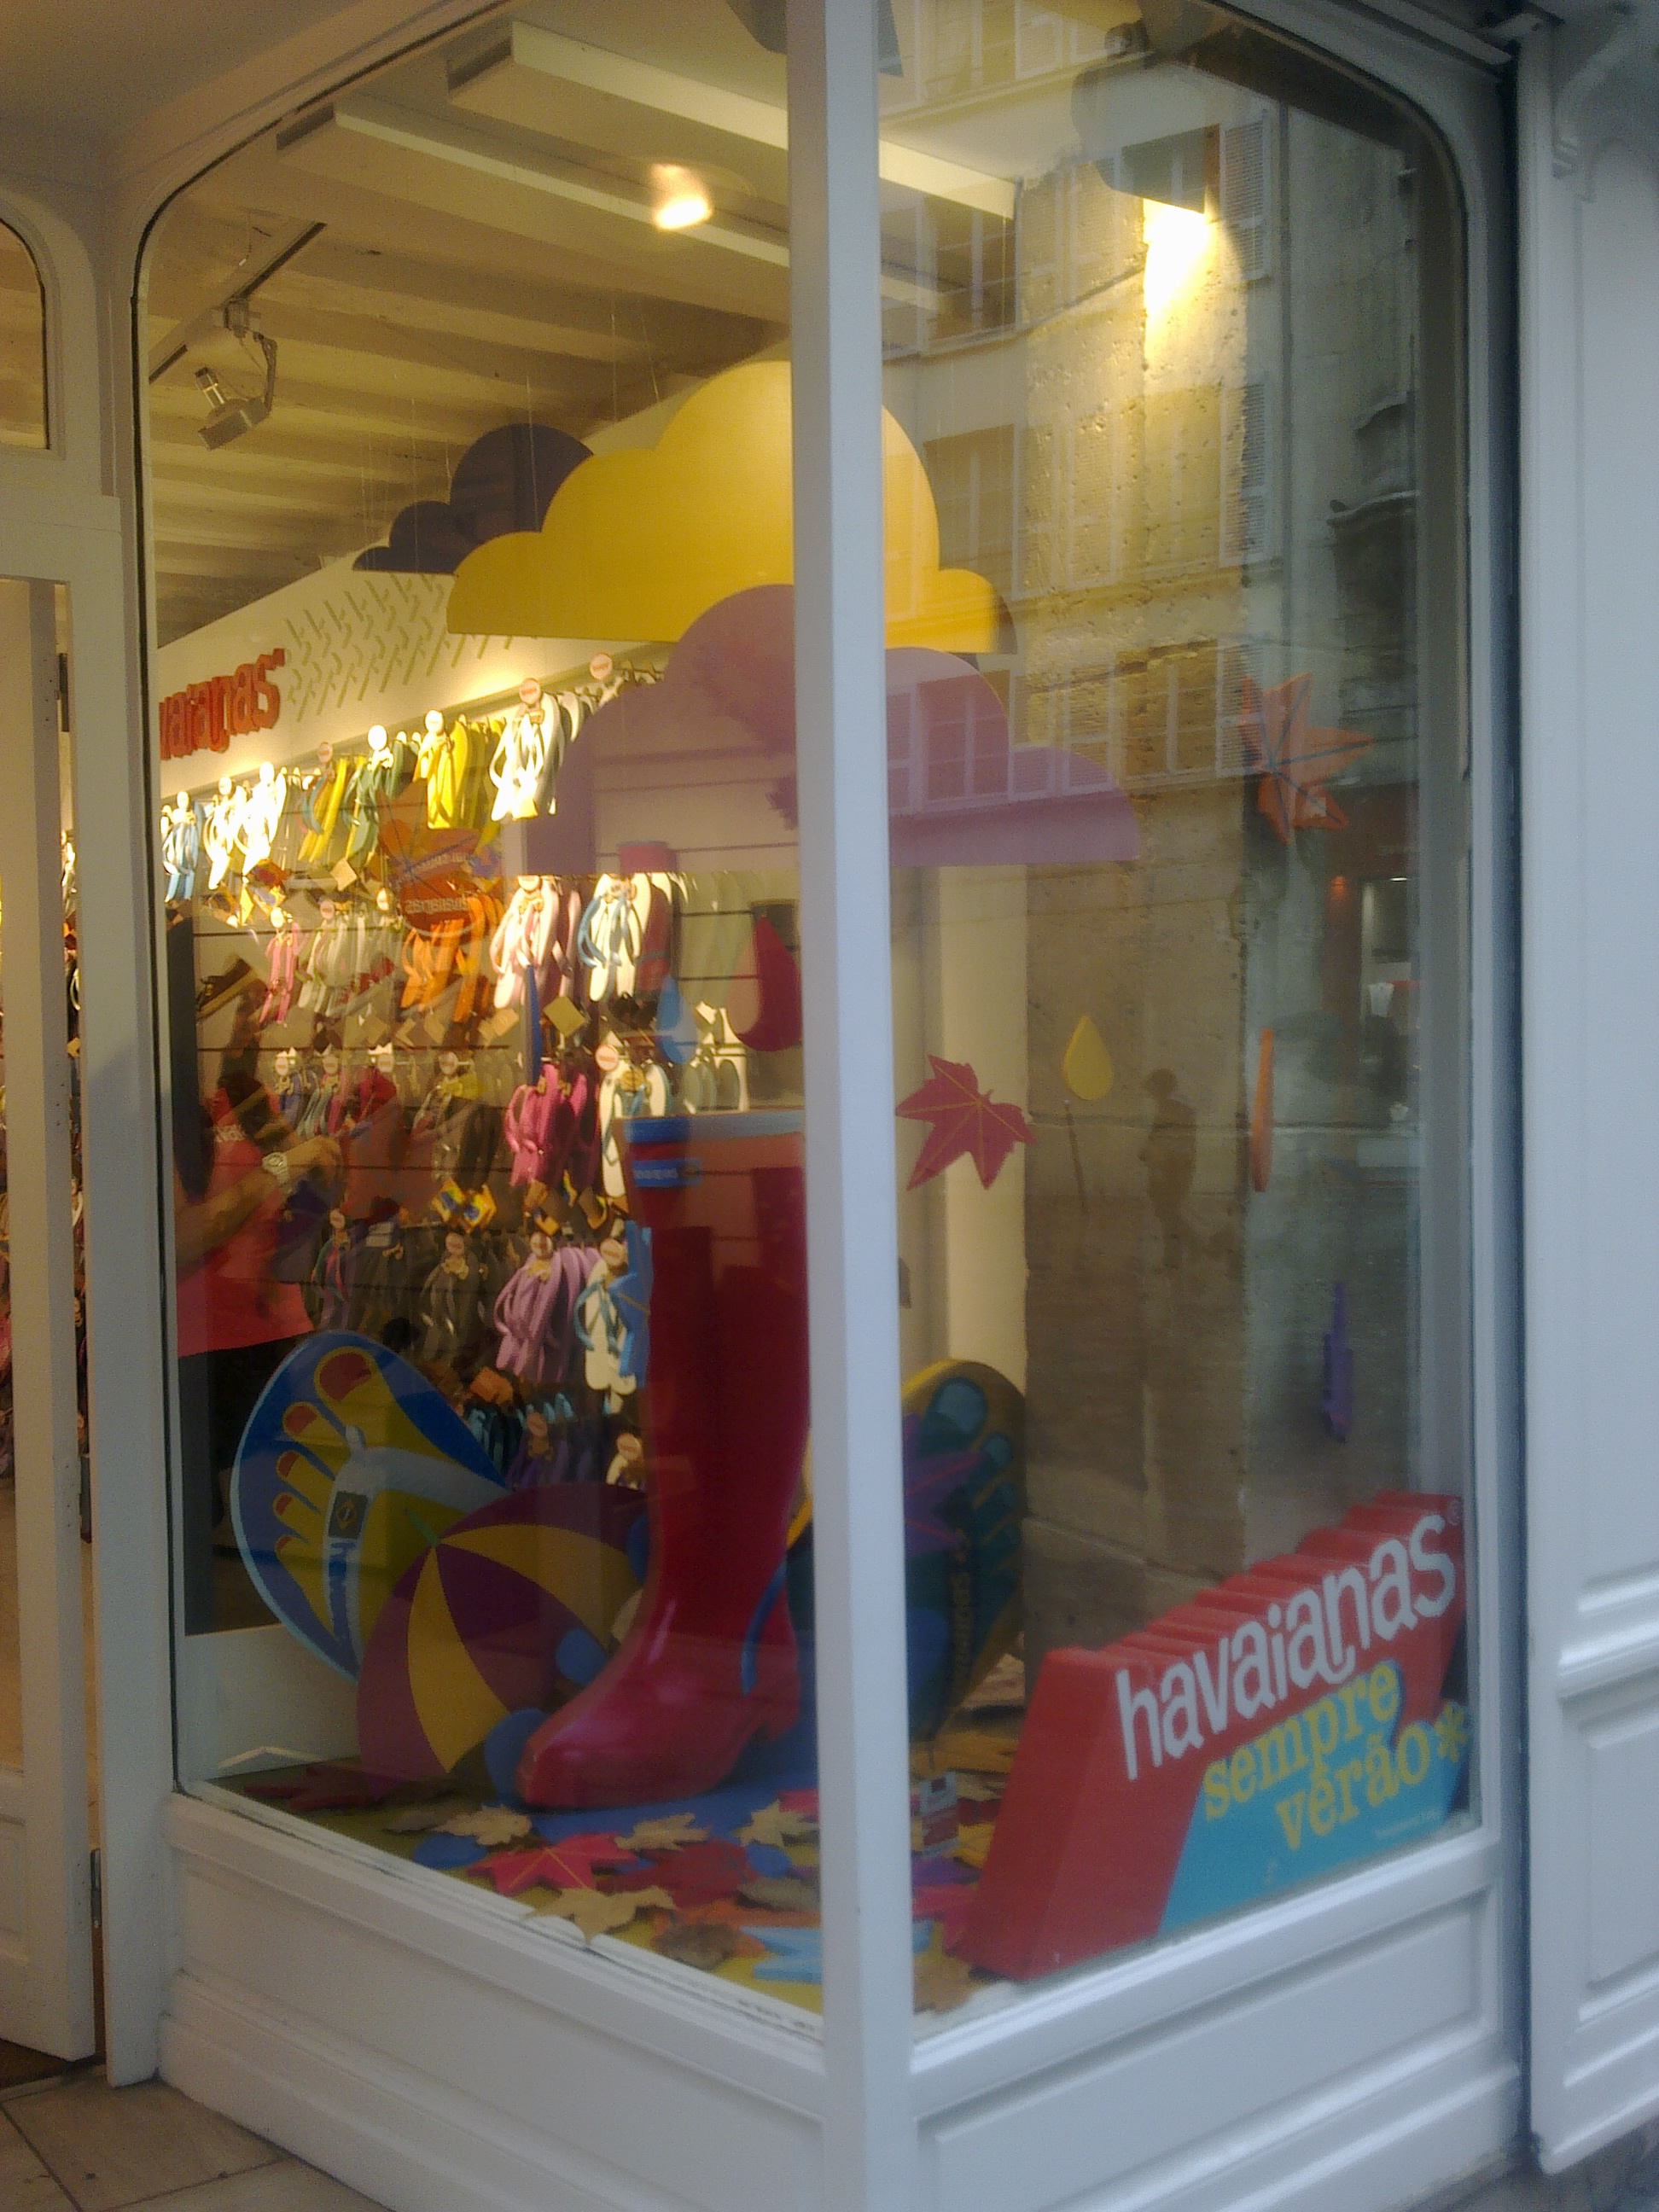 IC Escaparate Havaianas Paris (12).jpg